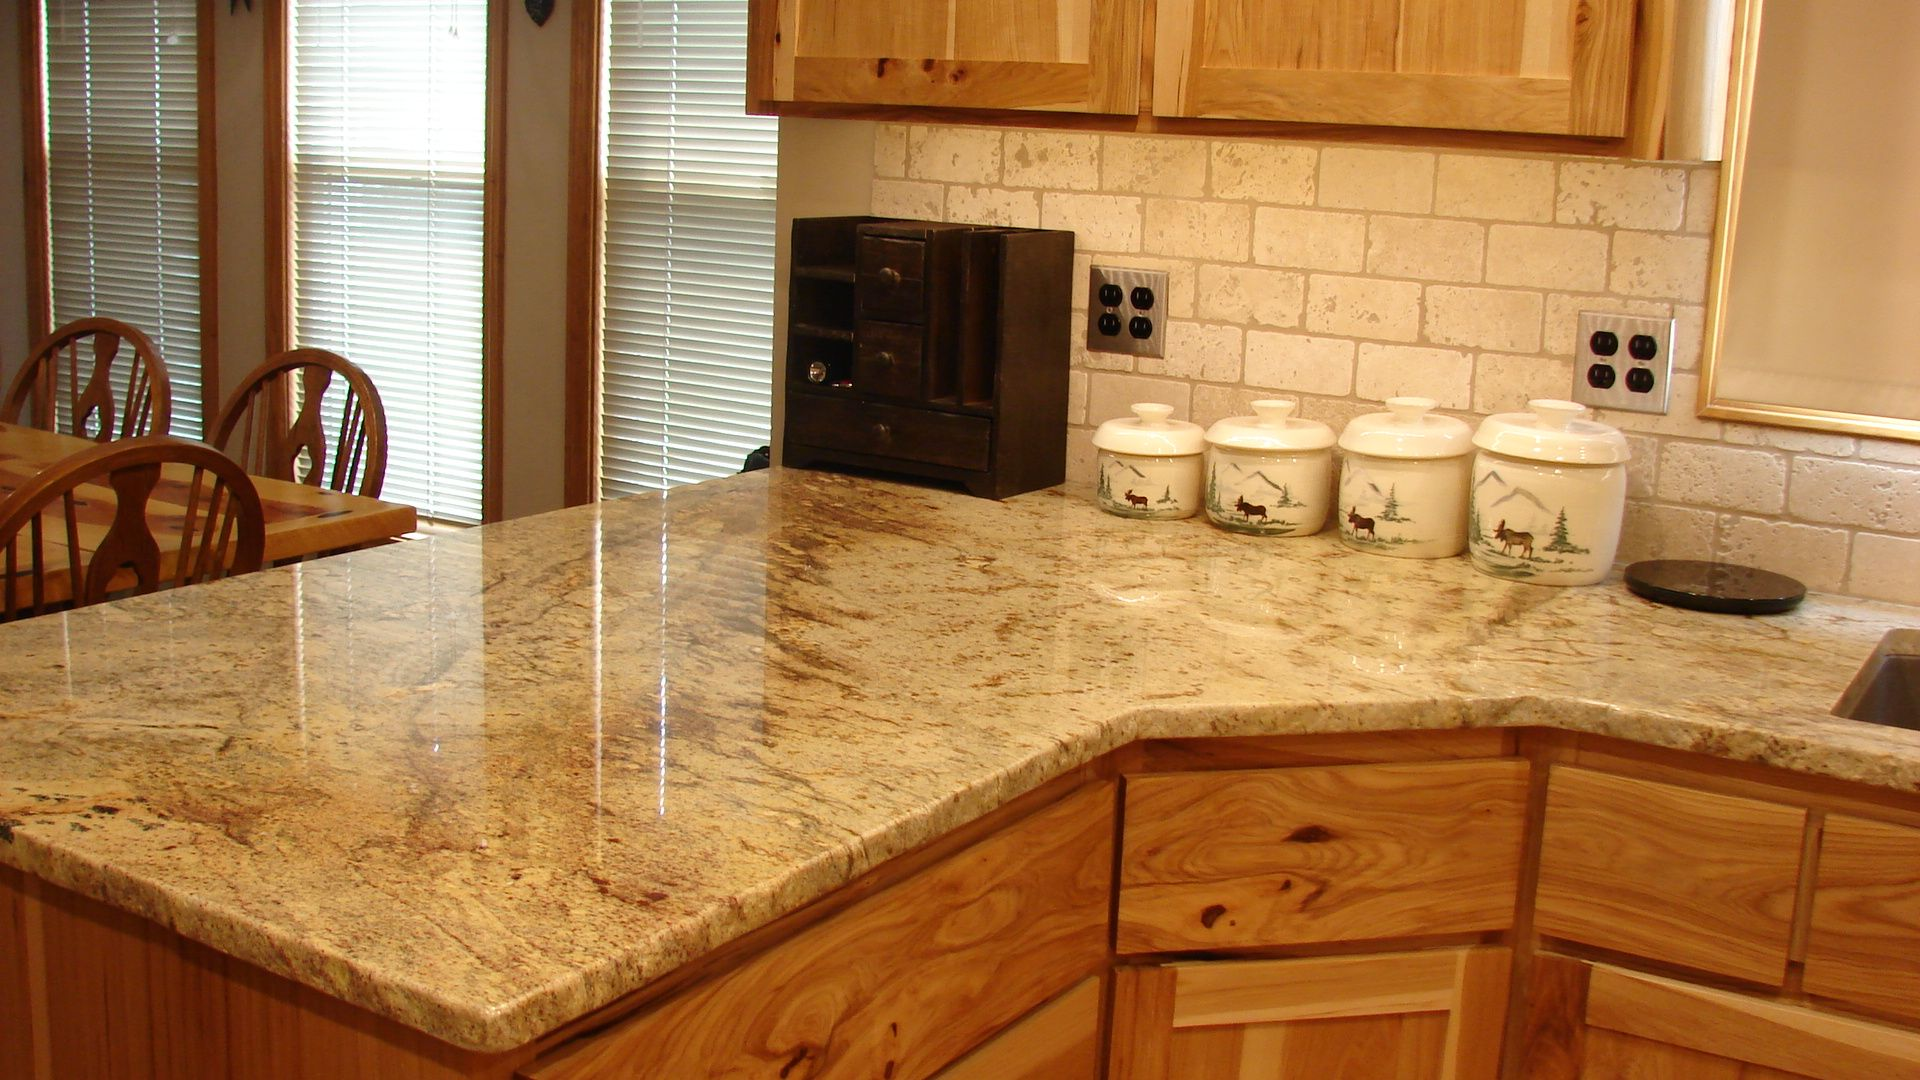 Granite Kitchen Counter Top Done In 3cm Typhoon Bordeaux With Chiseled Edge Back Sp Kitchen Remodel Countertops Trendy Kitchen Backsplash Kitchen Countertops